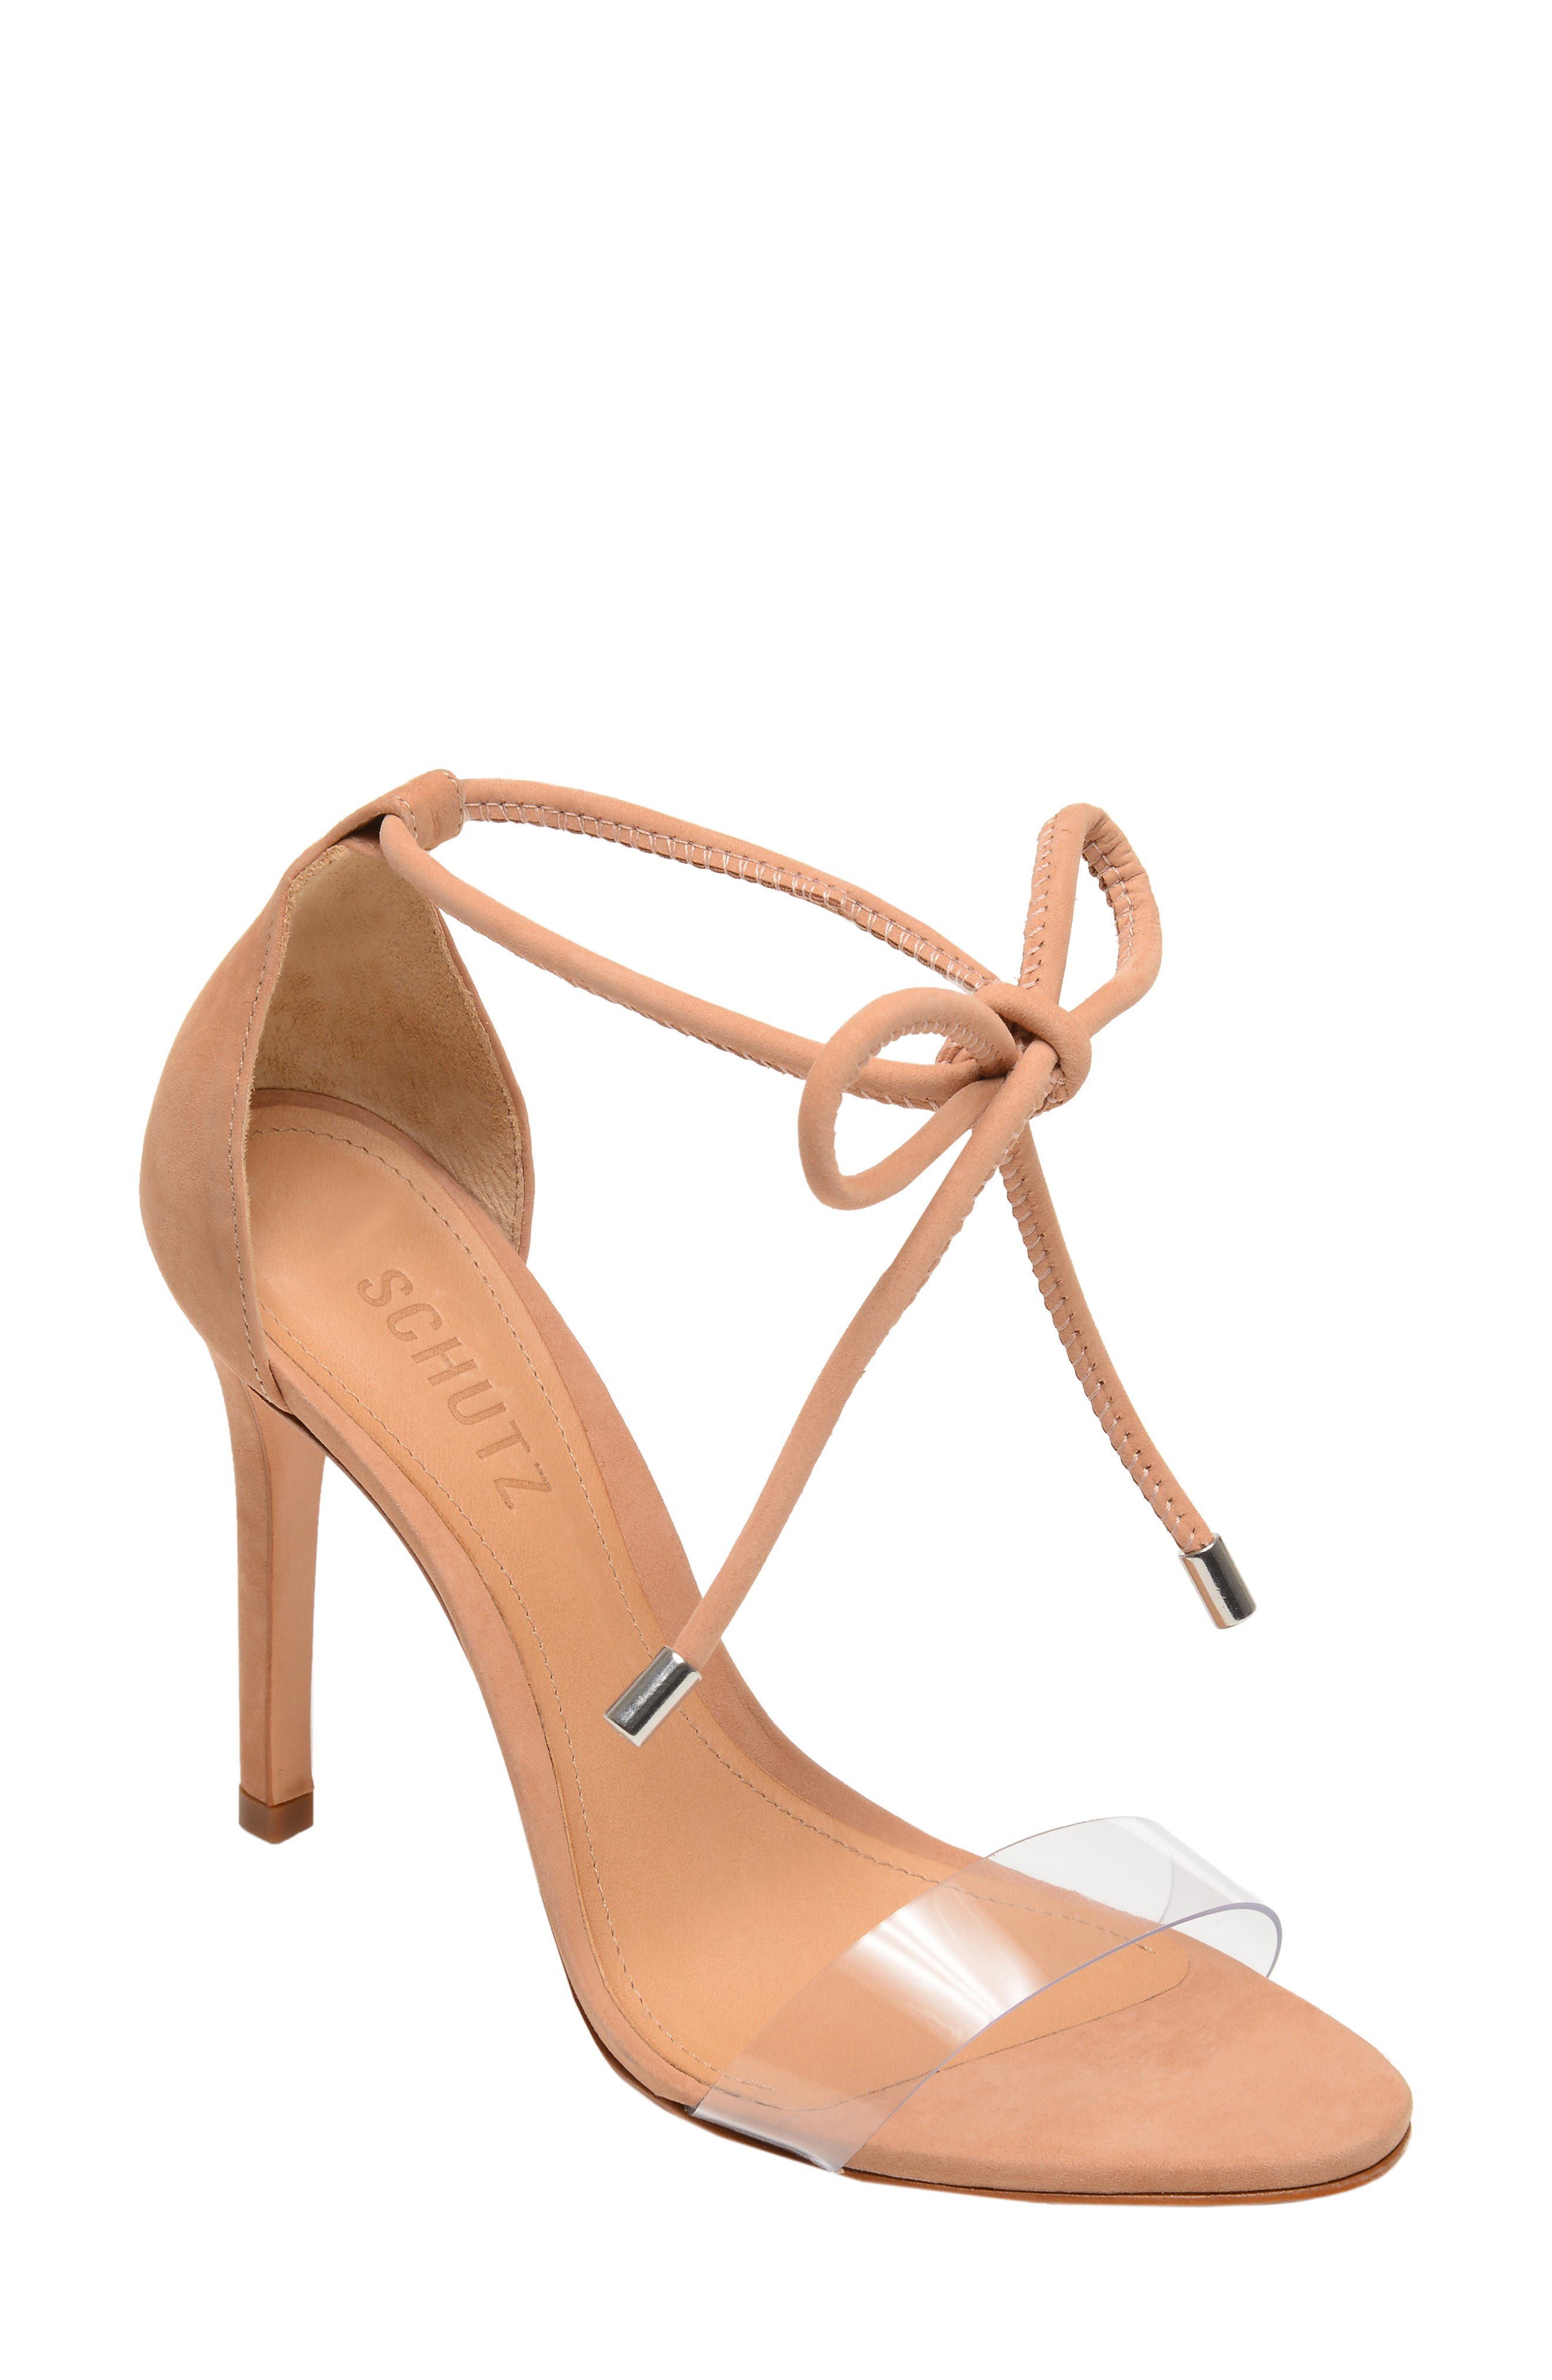 Shutz Monique Ankle Tie Sandal,                             Main thumbnail 1, color,                             TRANSPARENT/ HONEY BEIGE